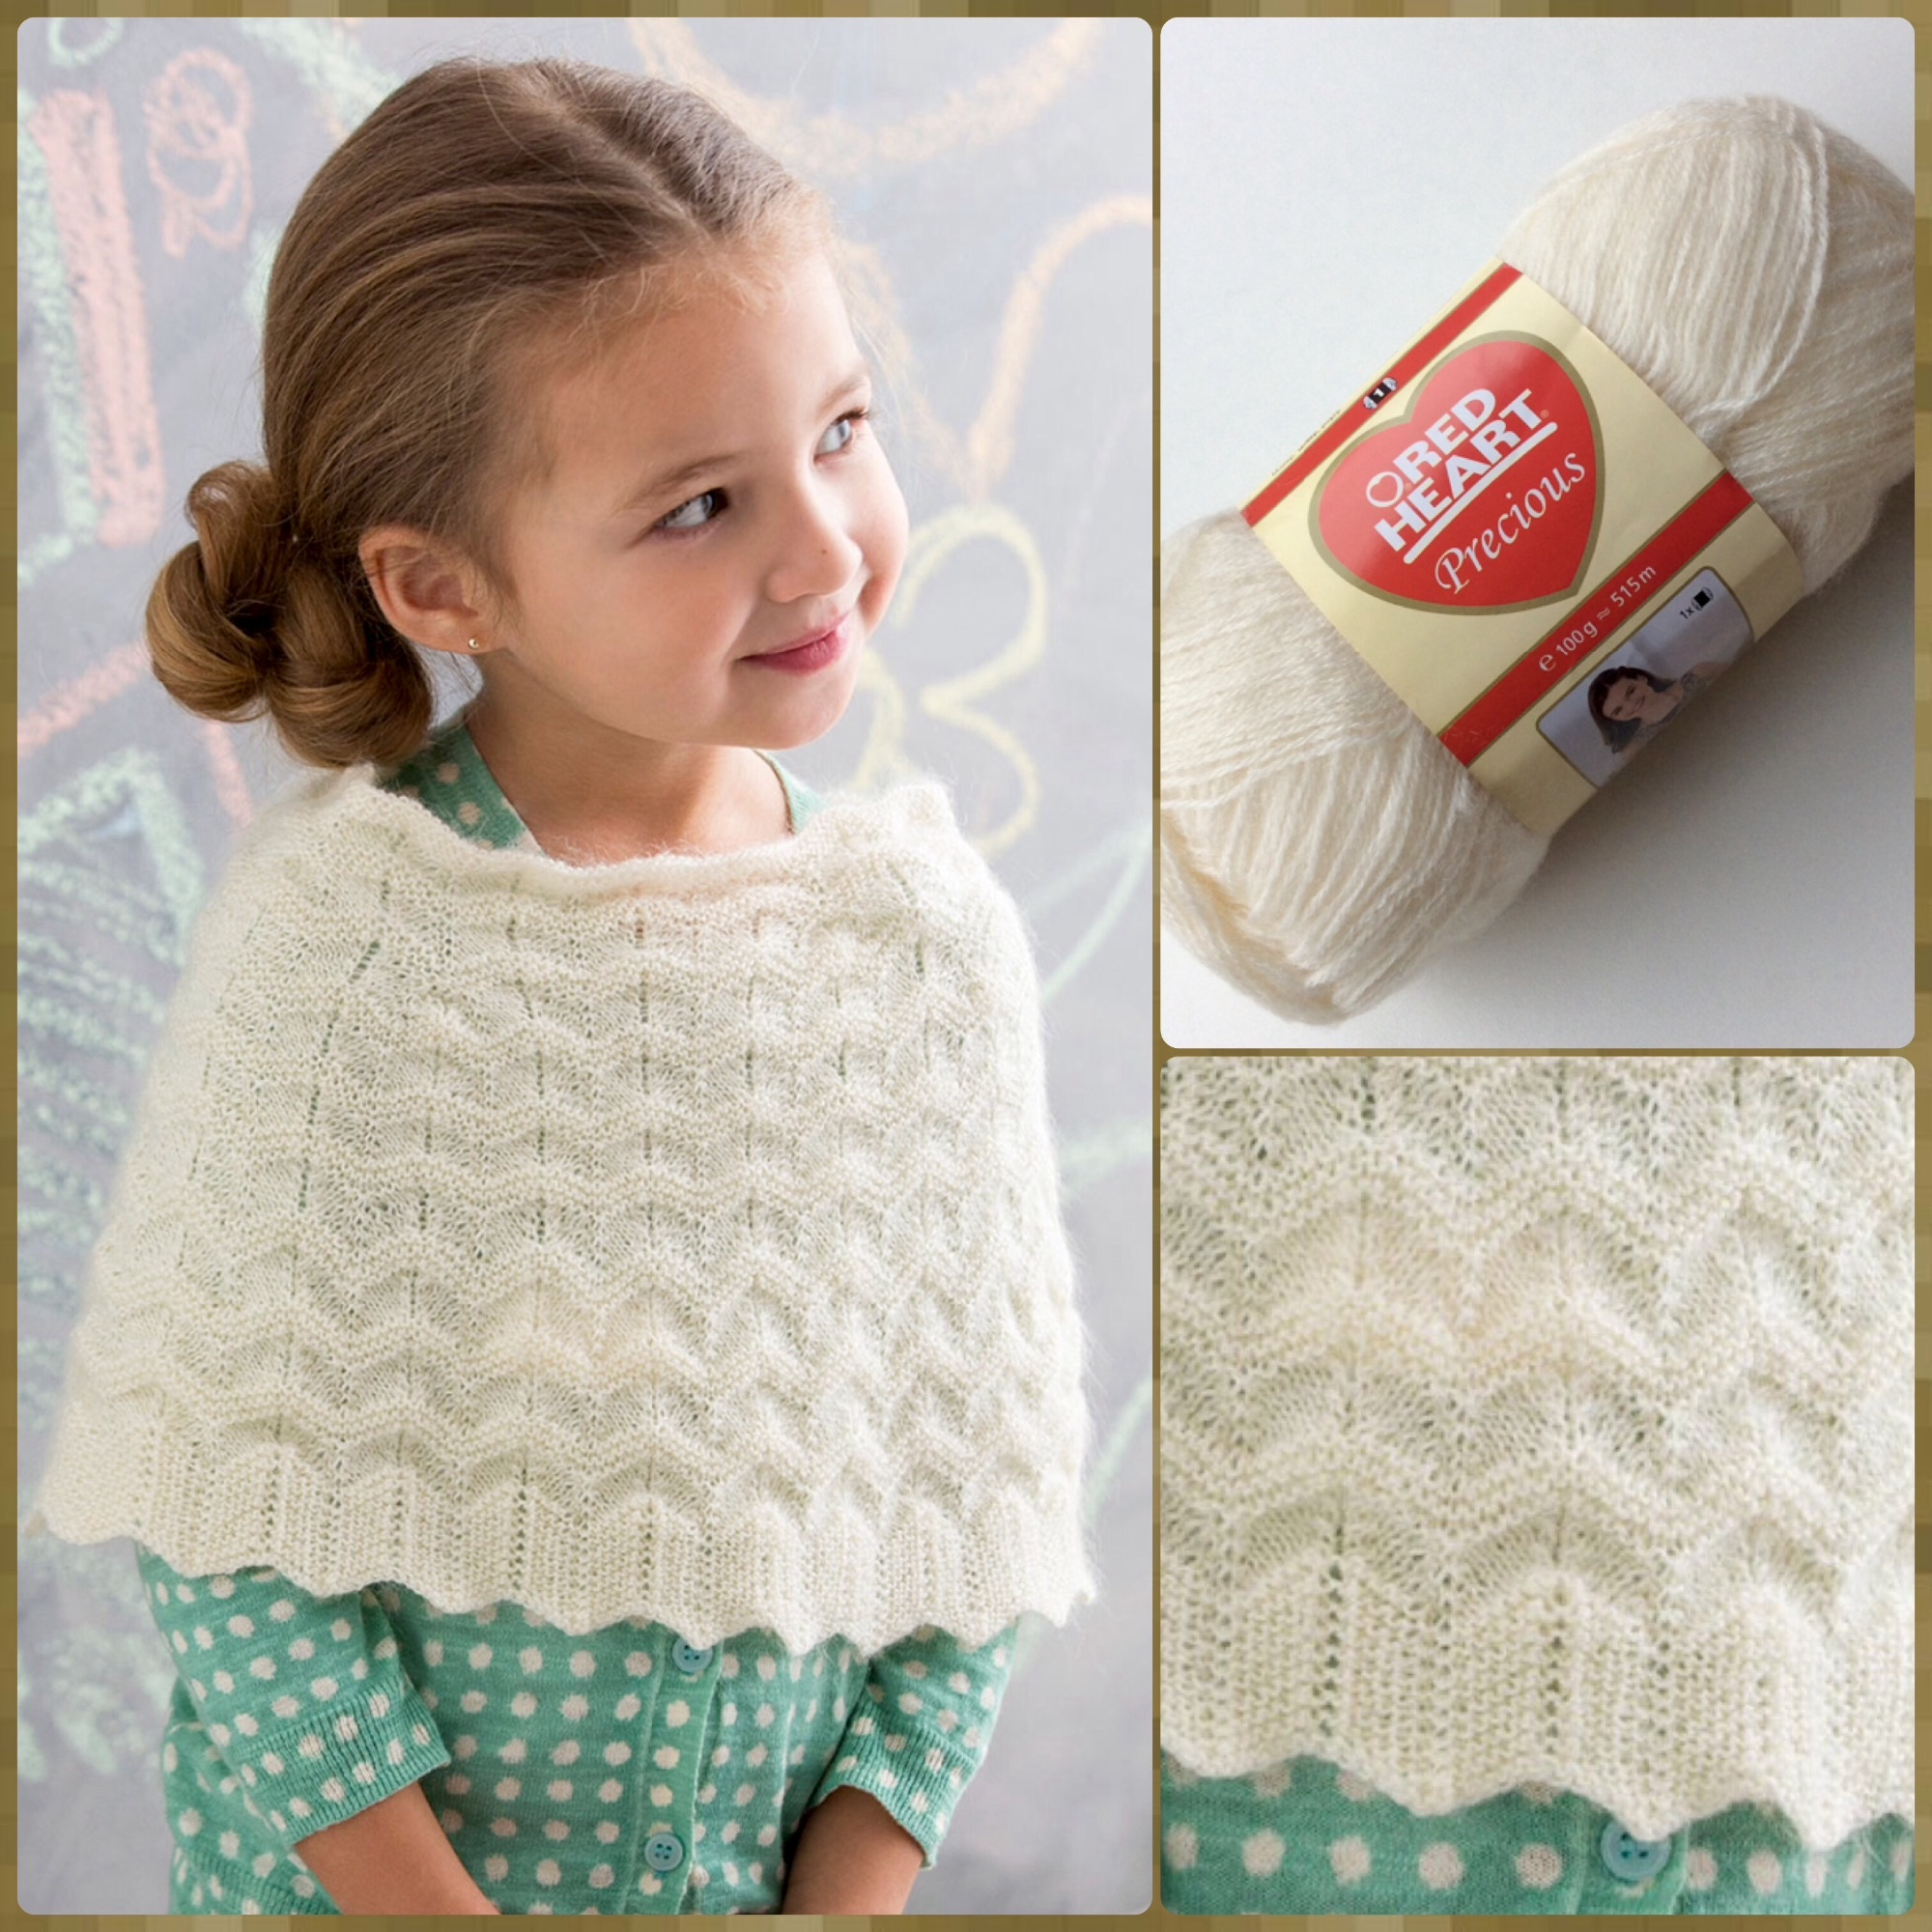 Red Heart Yarn Free Patterns Awesome Inspiration Design